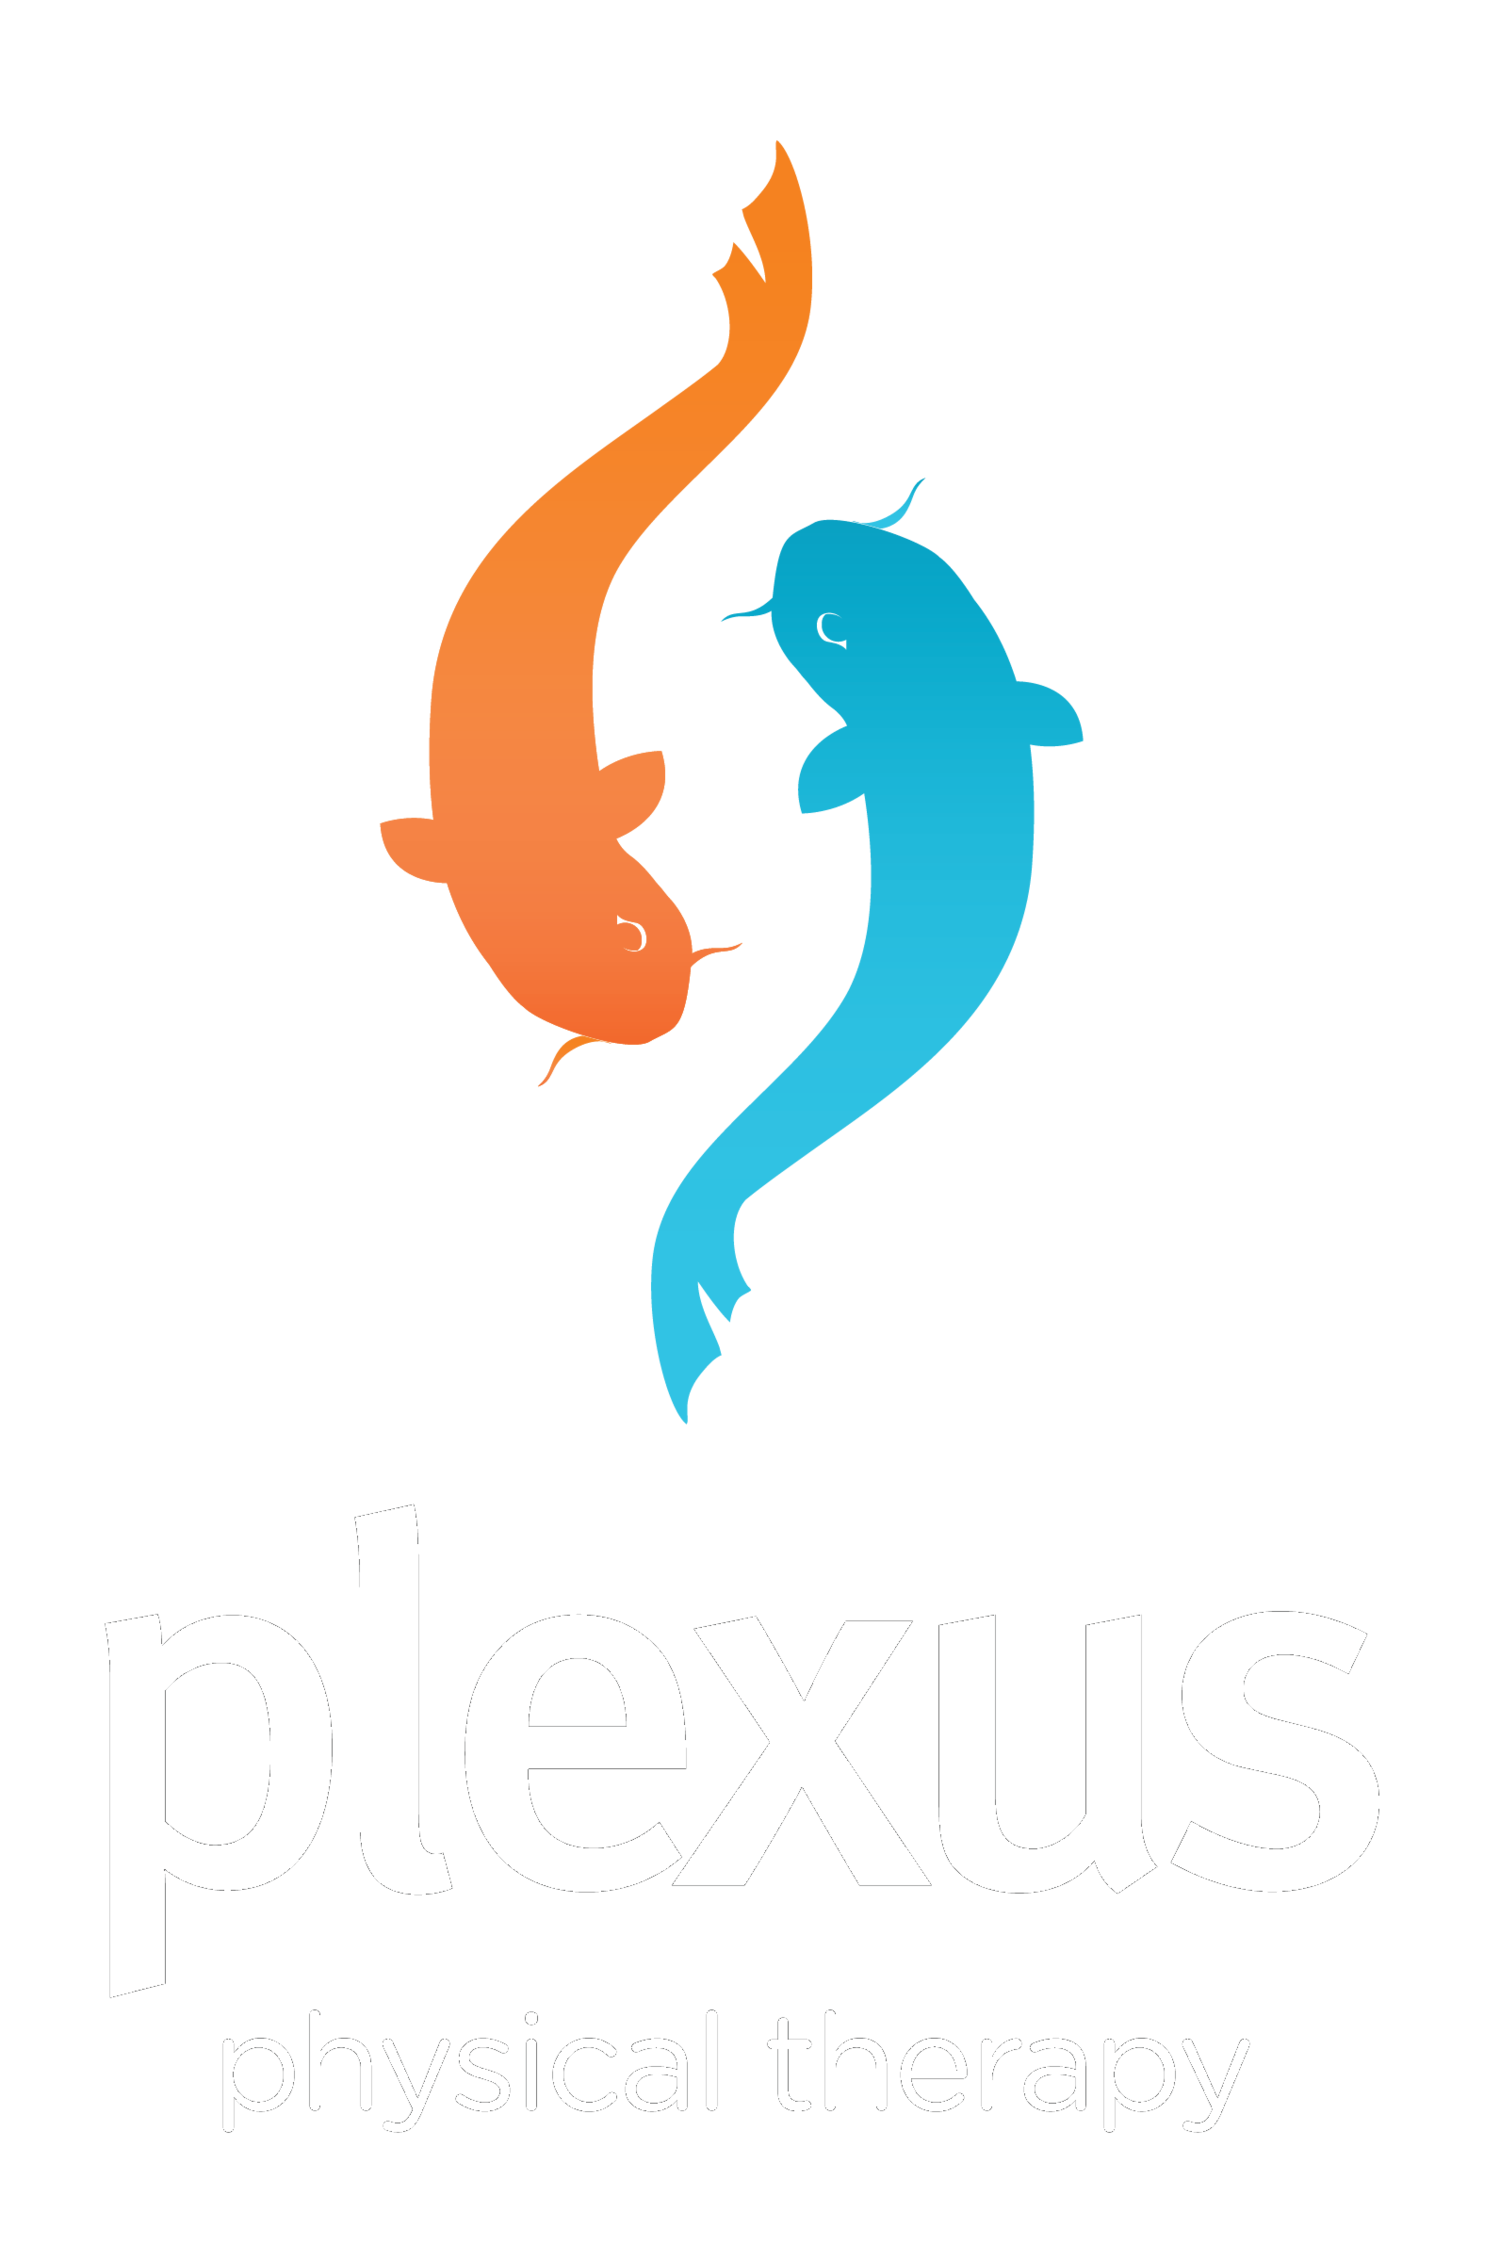 Plexus Physical Therapy